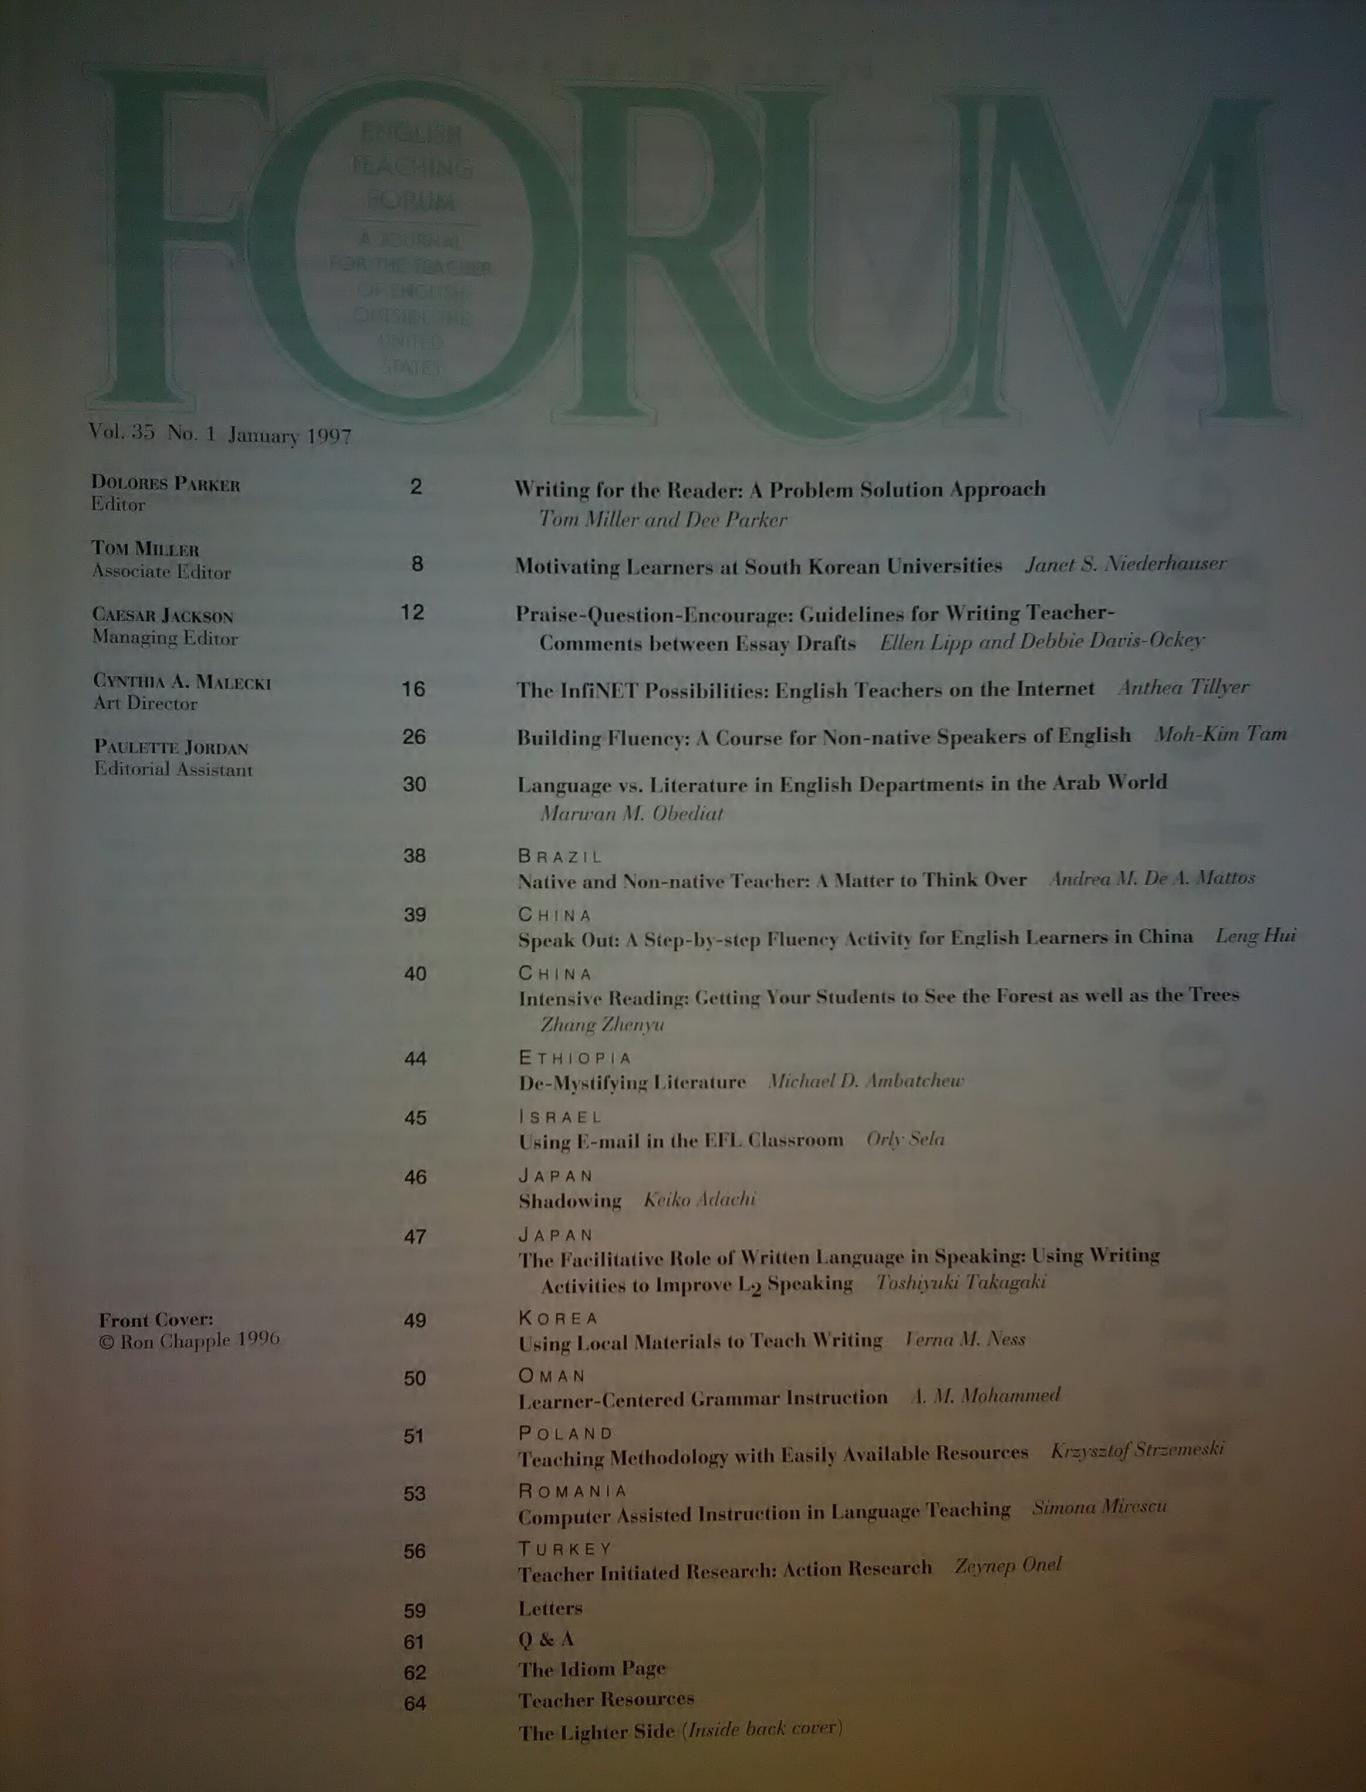 FORUM. Volume 35, Number 1, January 1997, Колектив